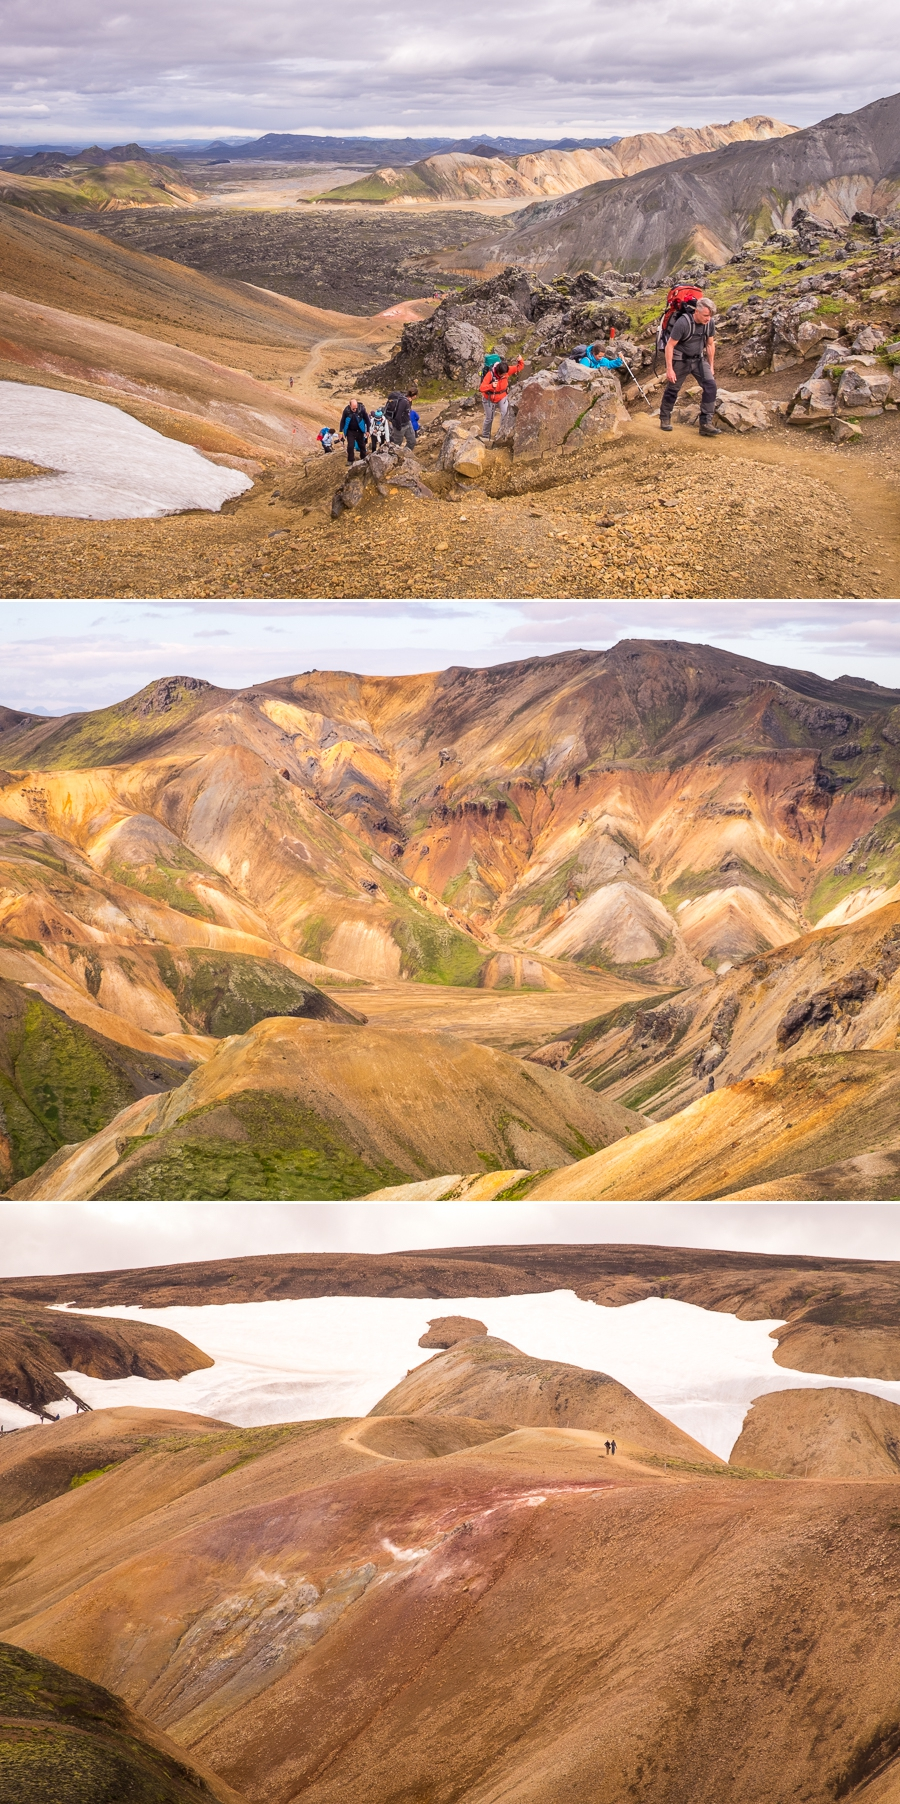 Trekking through Colorful rhyolite hills - Laugavegur Trail - Icelandic Highlands